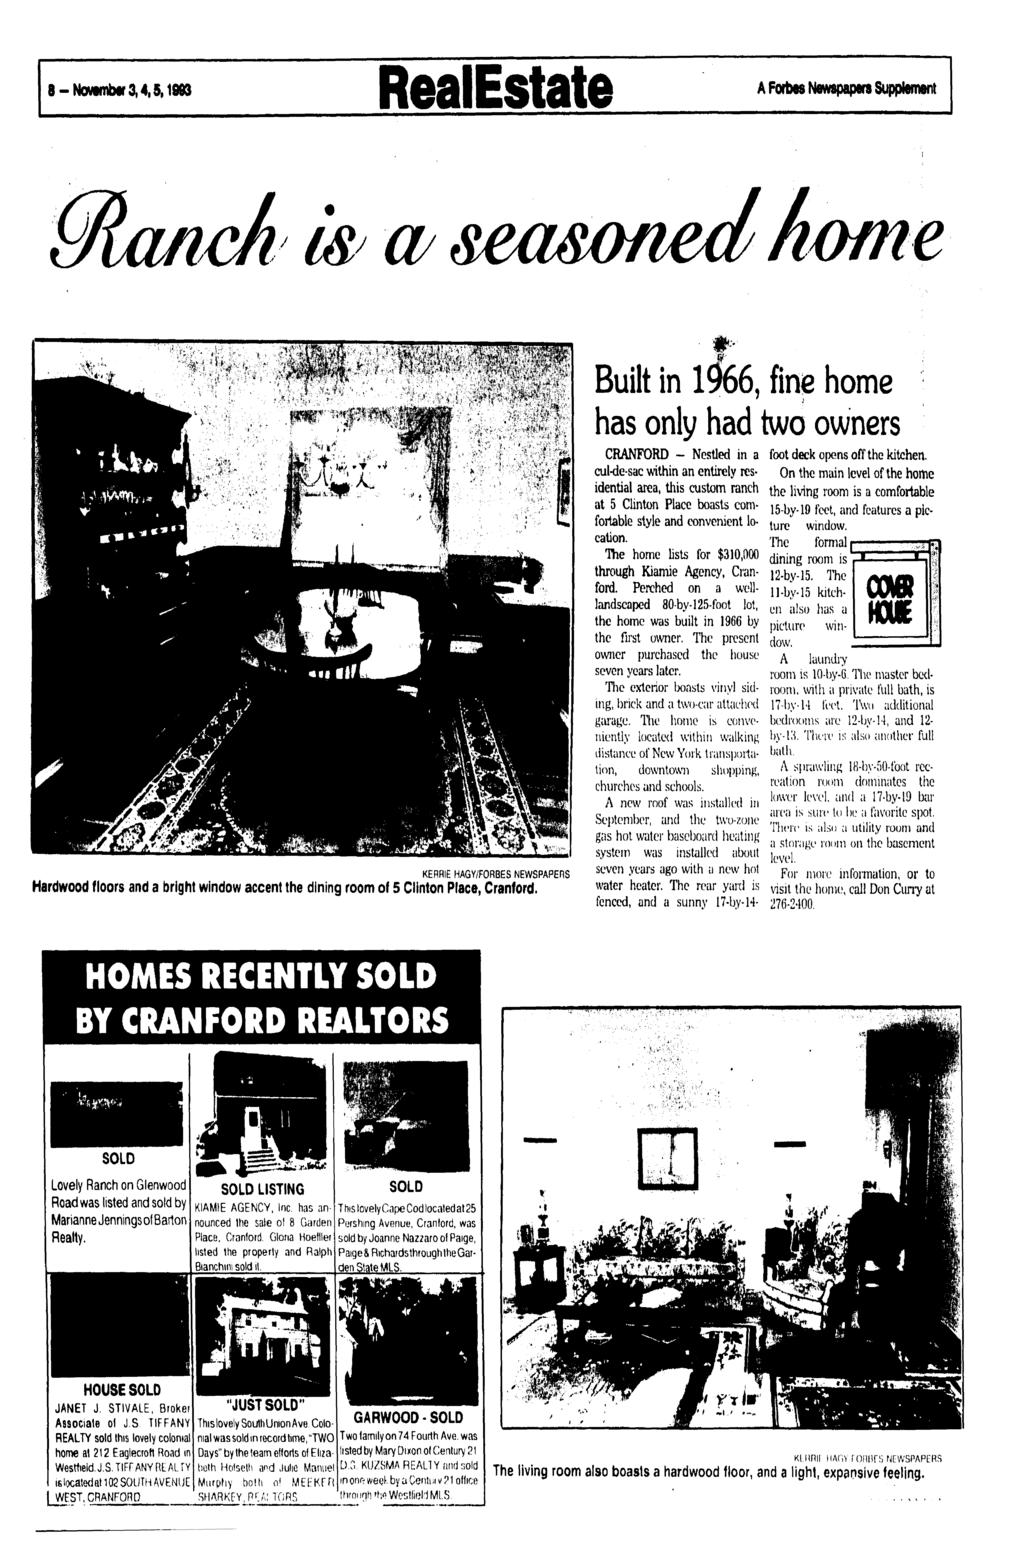 8-November 3,4,5,1993 RealEstate A Fbrtas Newspapers Supplement seasxmedh Built in 1966, fine home has only had two owners KERfllE HAGY/FORBES NEWSPAPERS Hardwood floors and a bright window accent